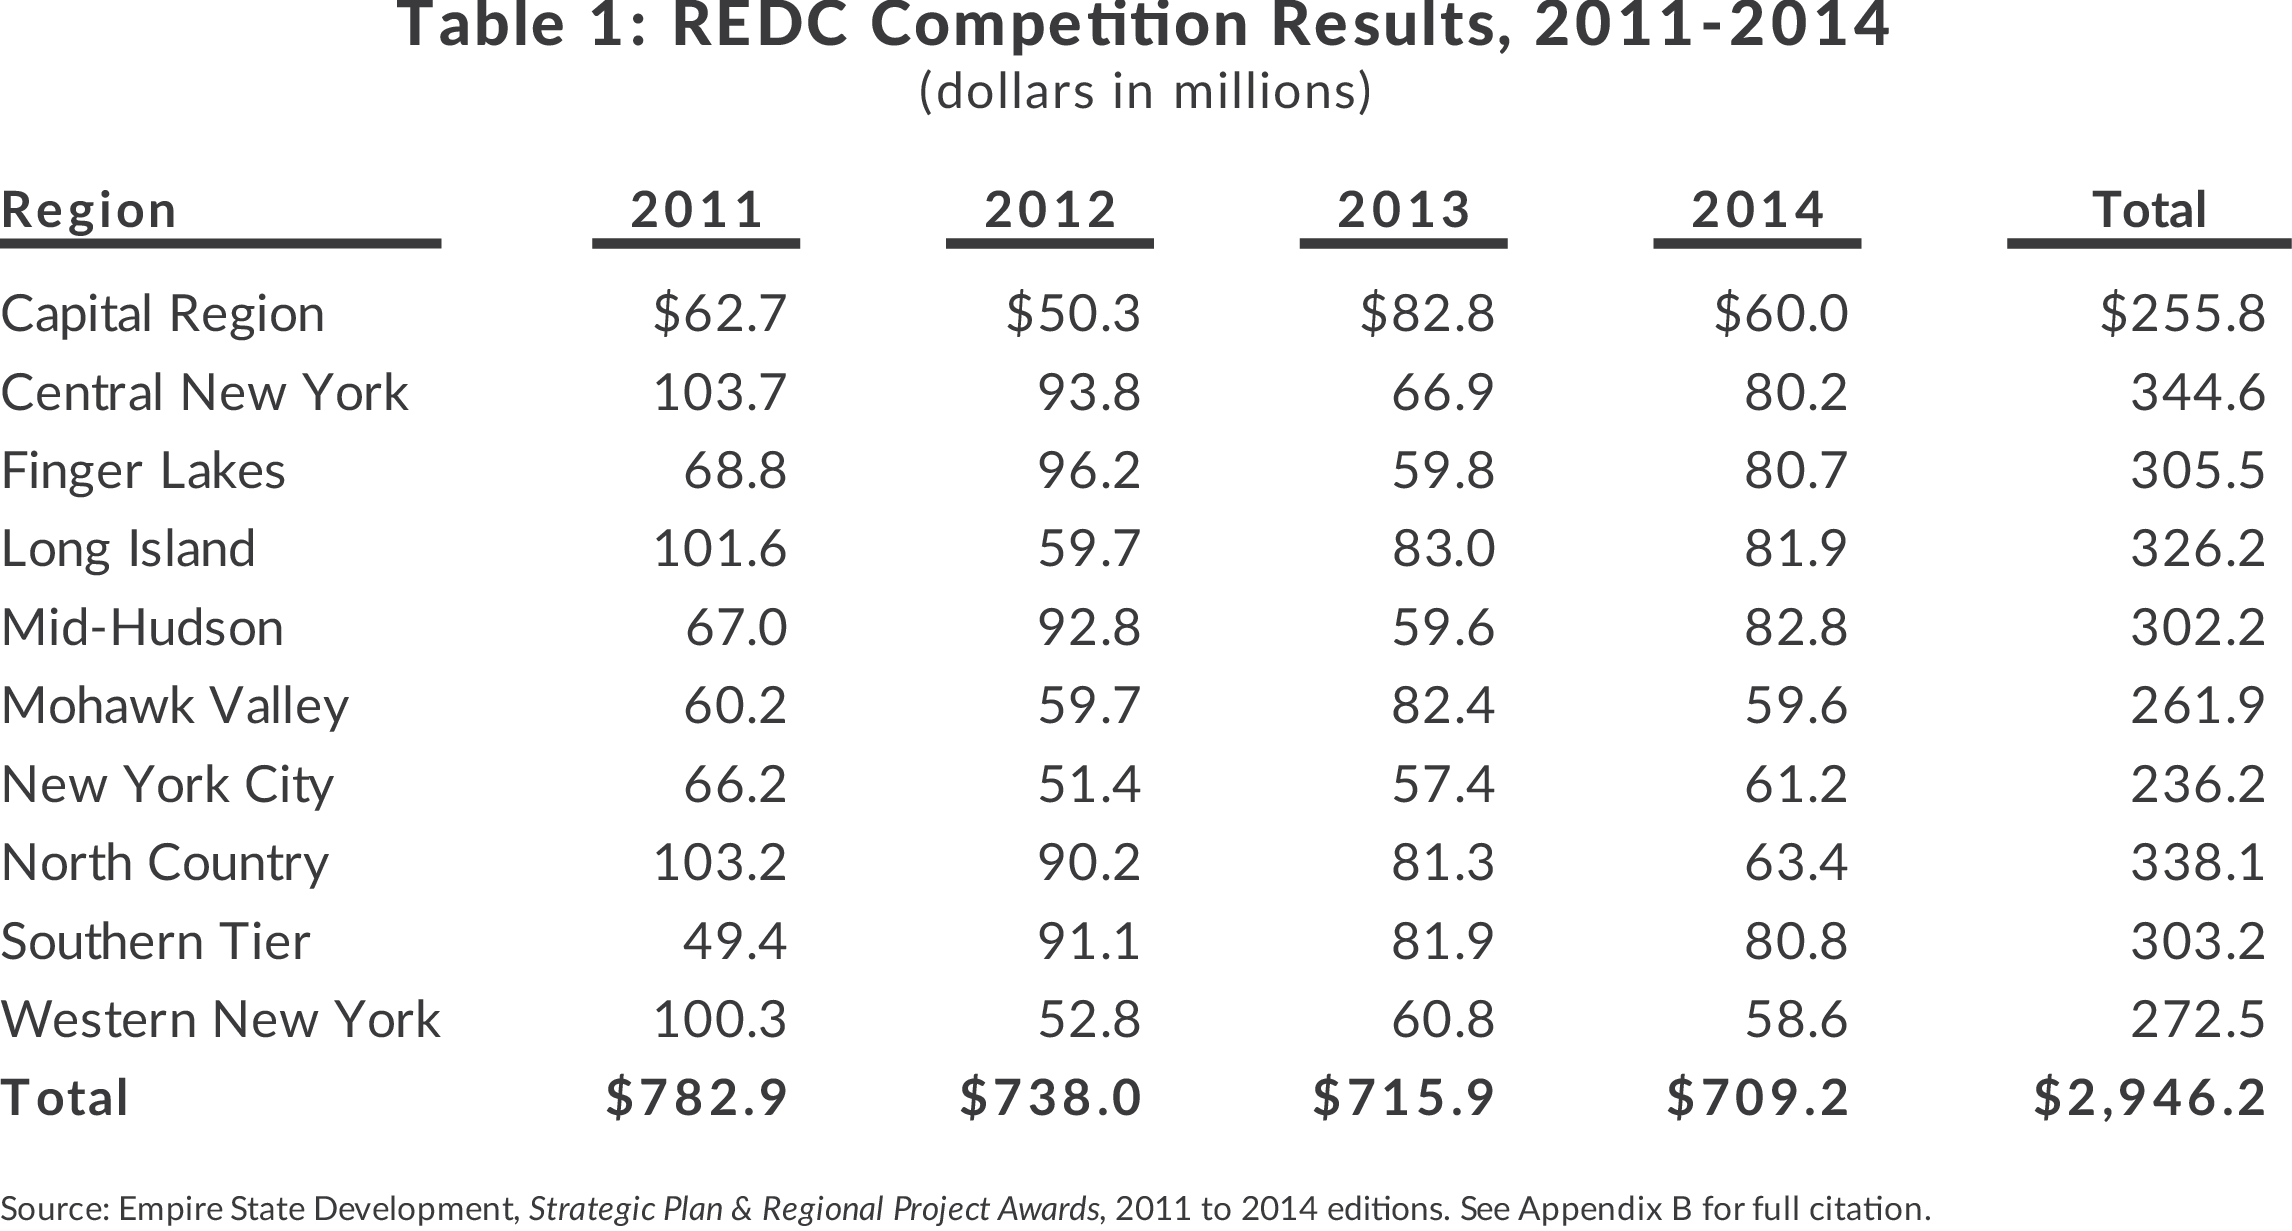 New York State Regional Economic Development Councils Competition Results 2011 to 2014